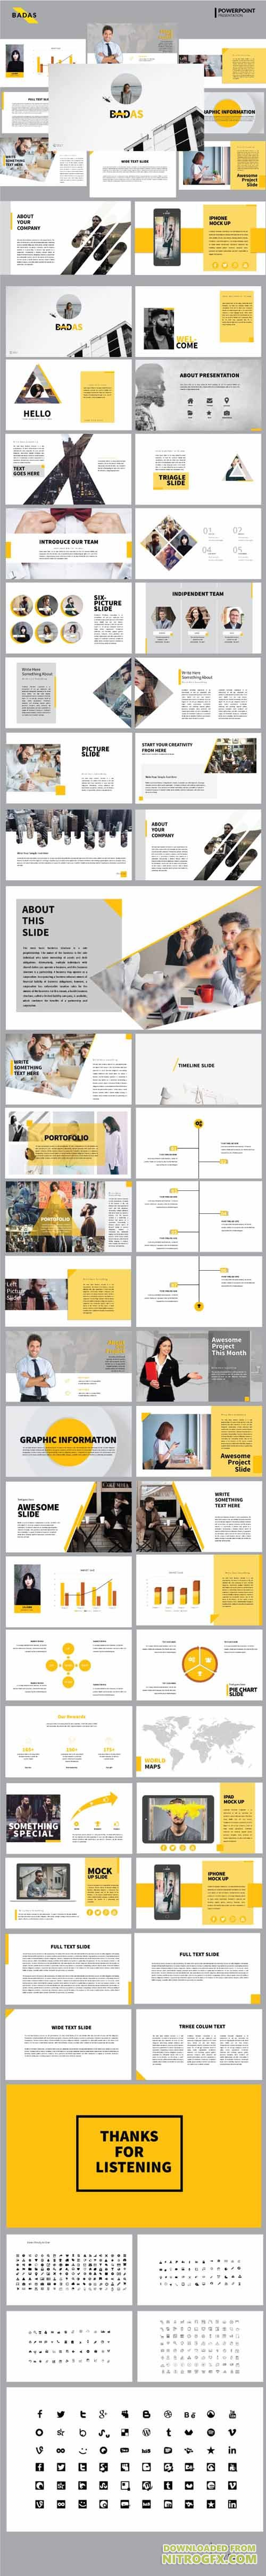 Badas - Creative Multipurpose Presentation Templates 20420094